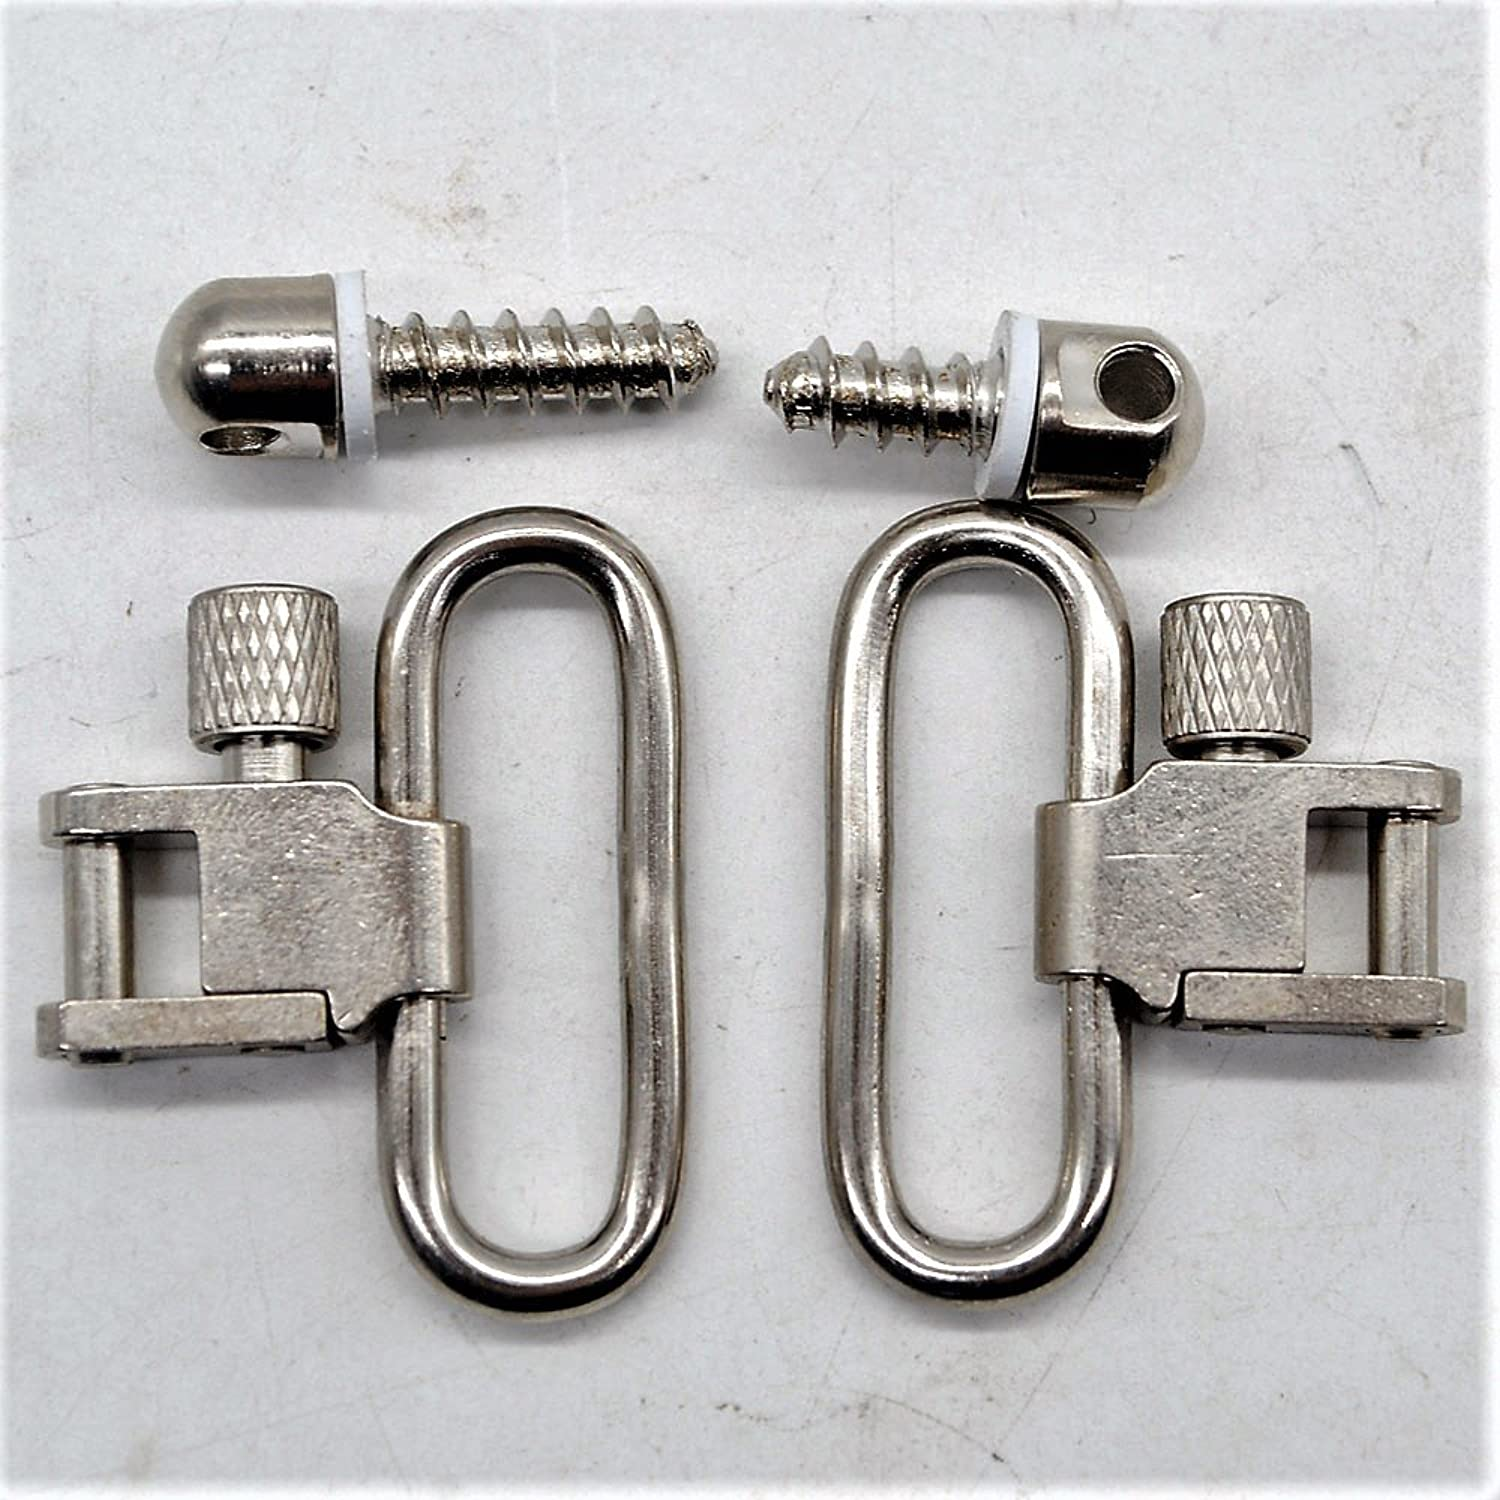 TRIROCK Sling Swivel Nickel Plated 1.25 Inch Silver with Quick Release Sling Mounting Kit Stud Screws